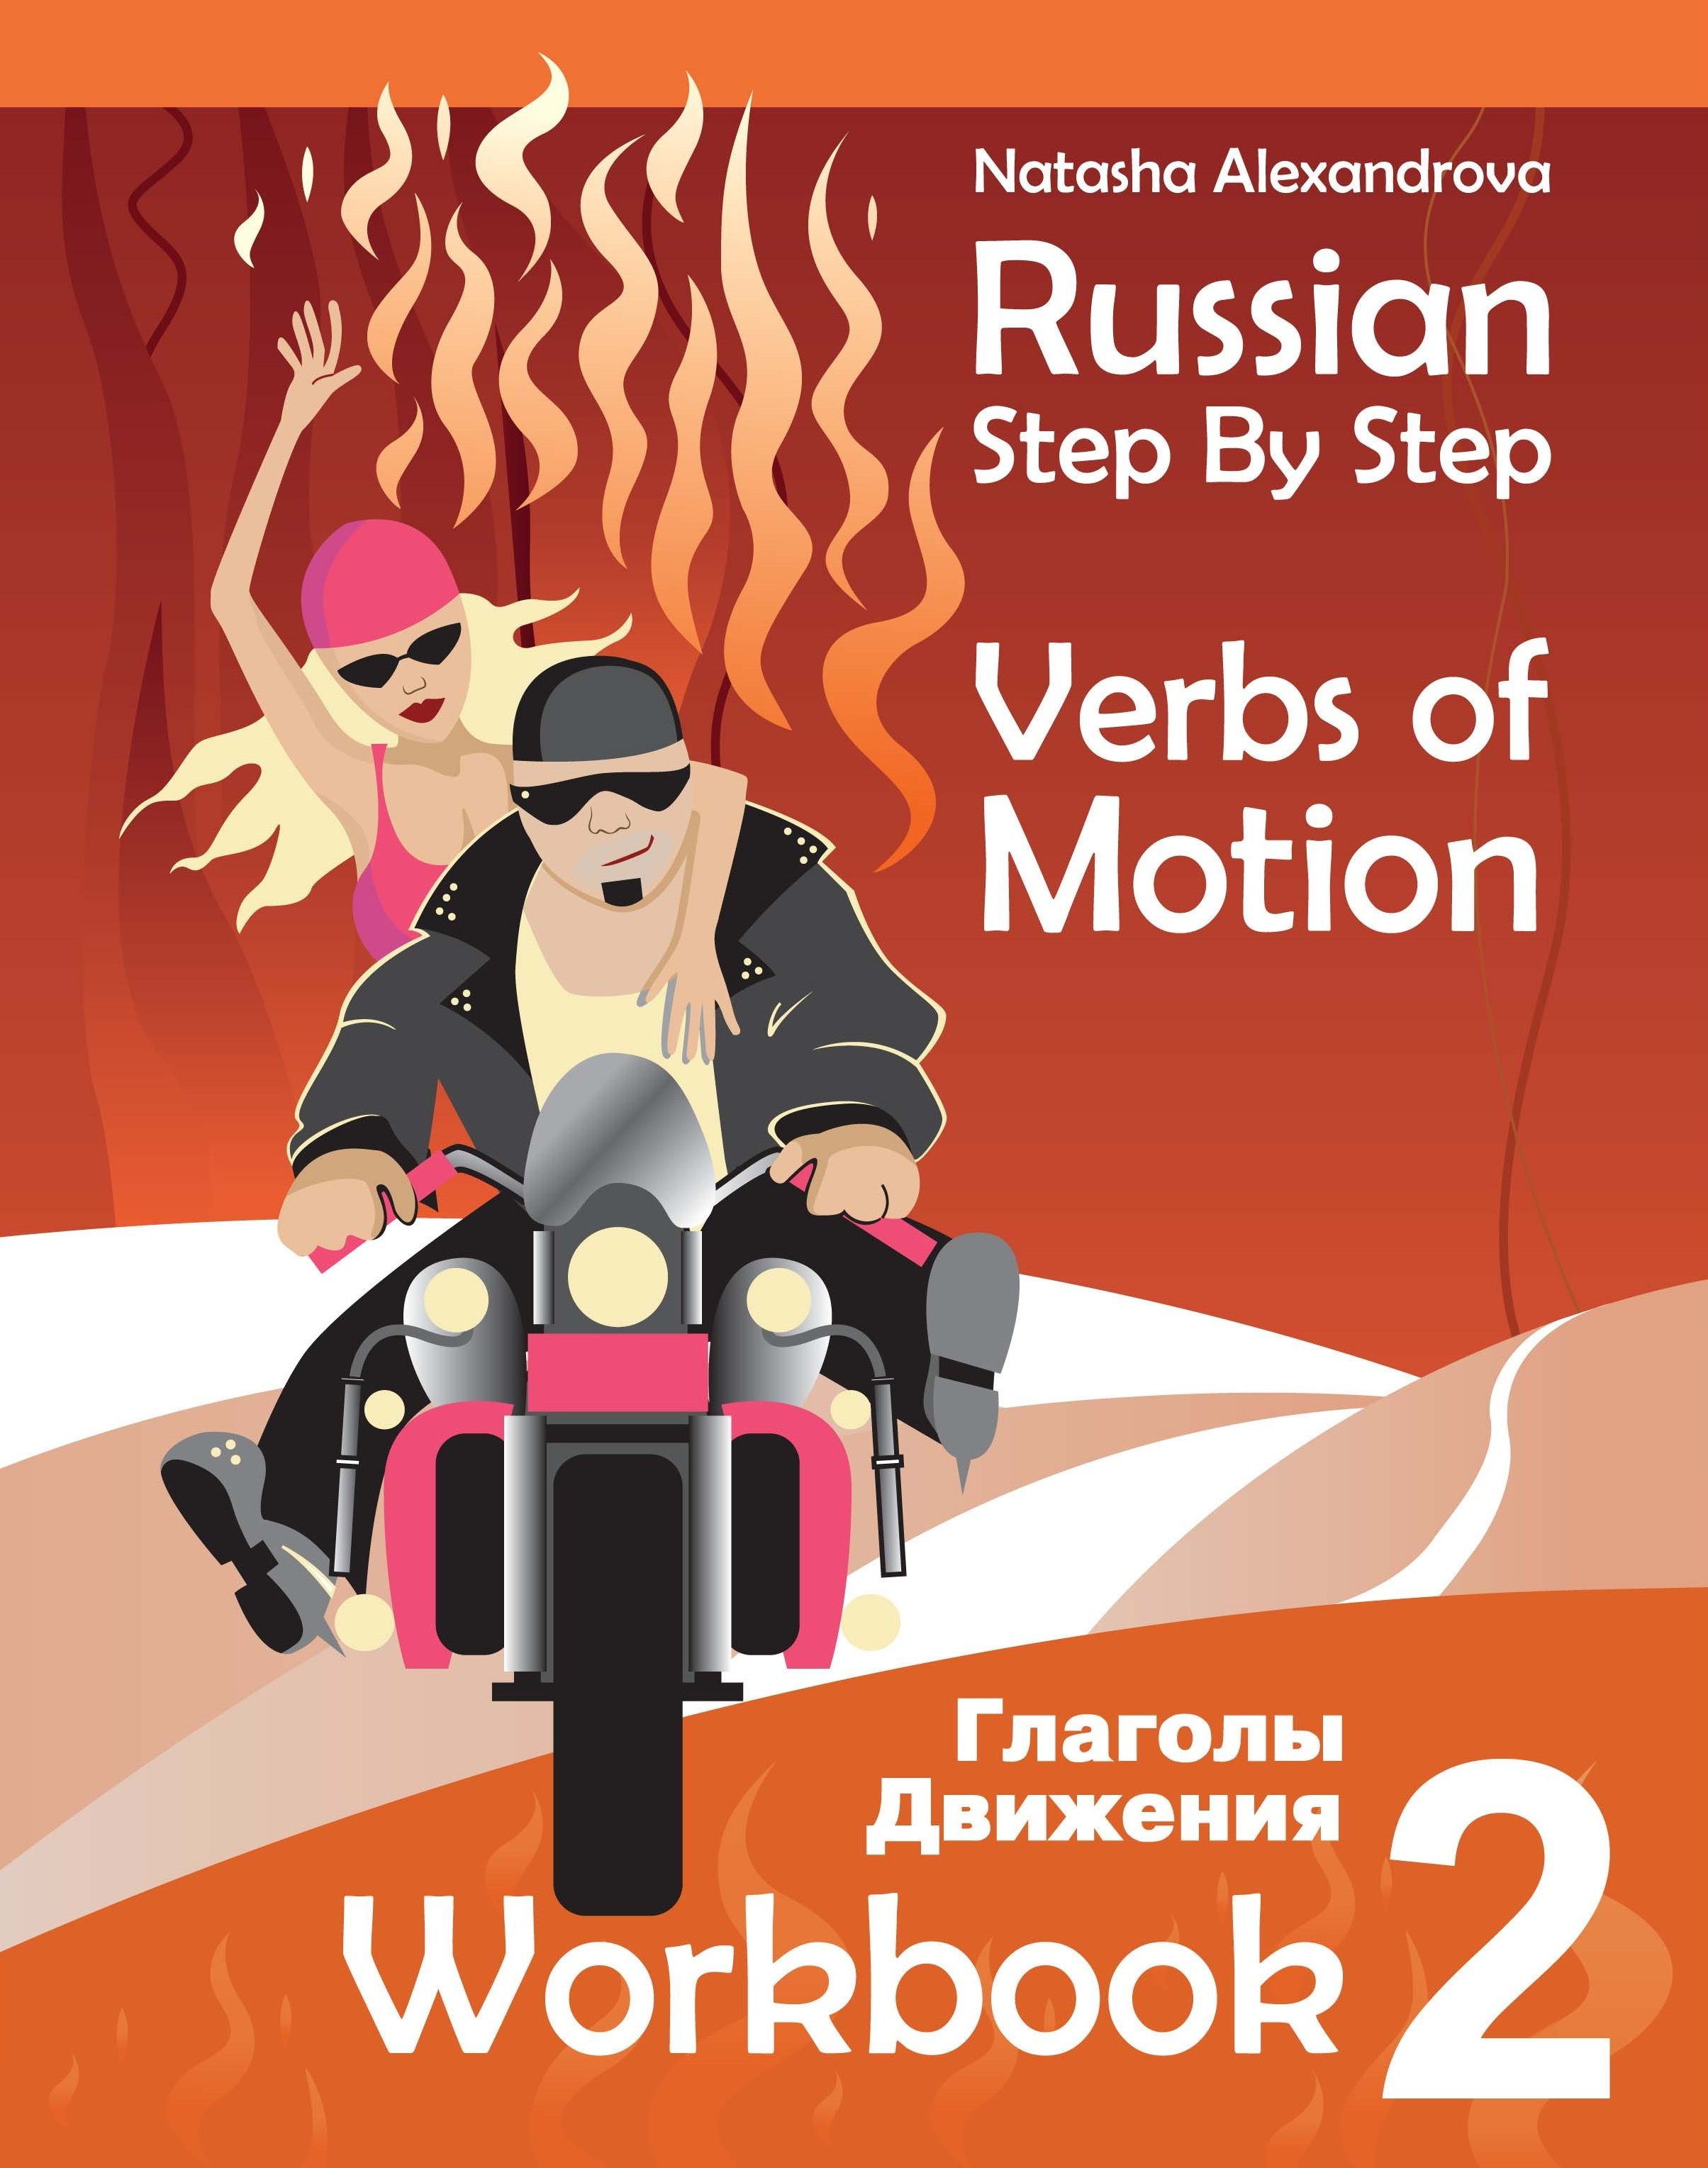 Russian Verbs Of Motion Series With Images